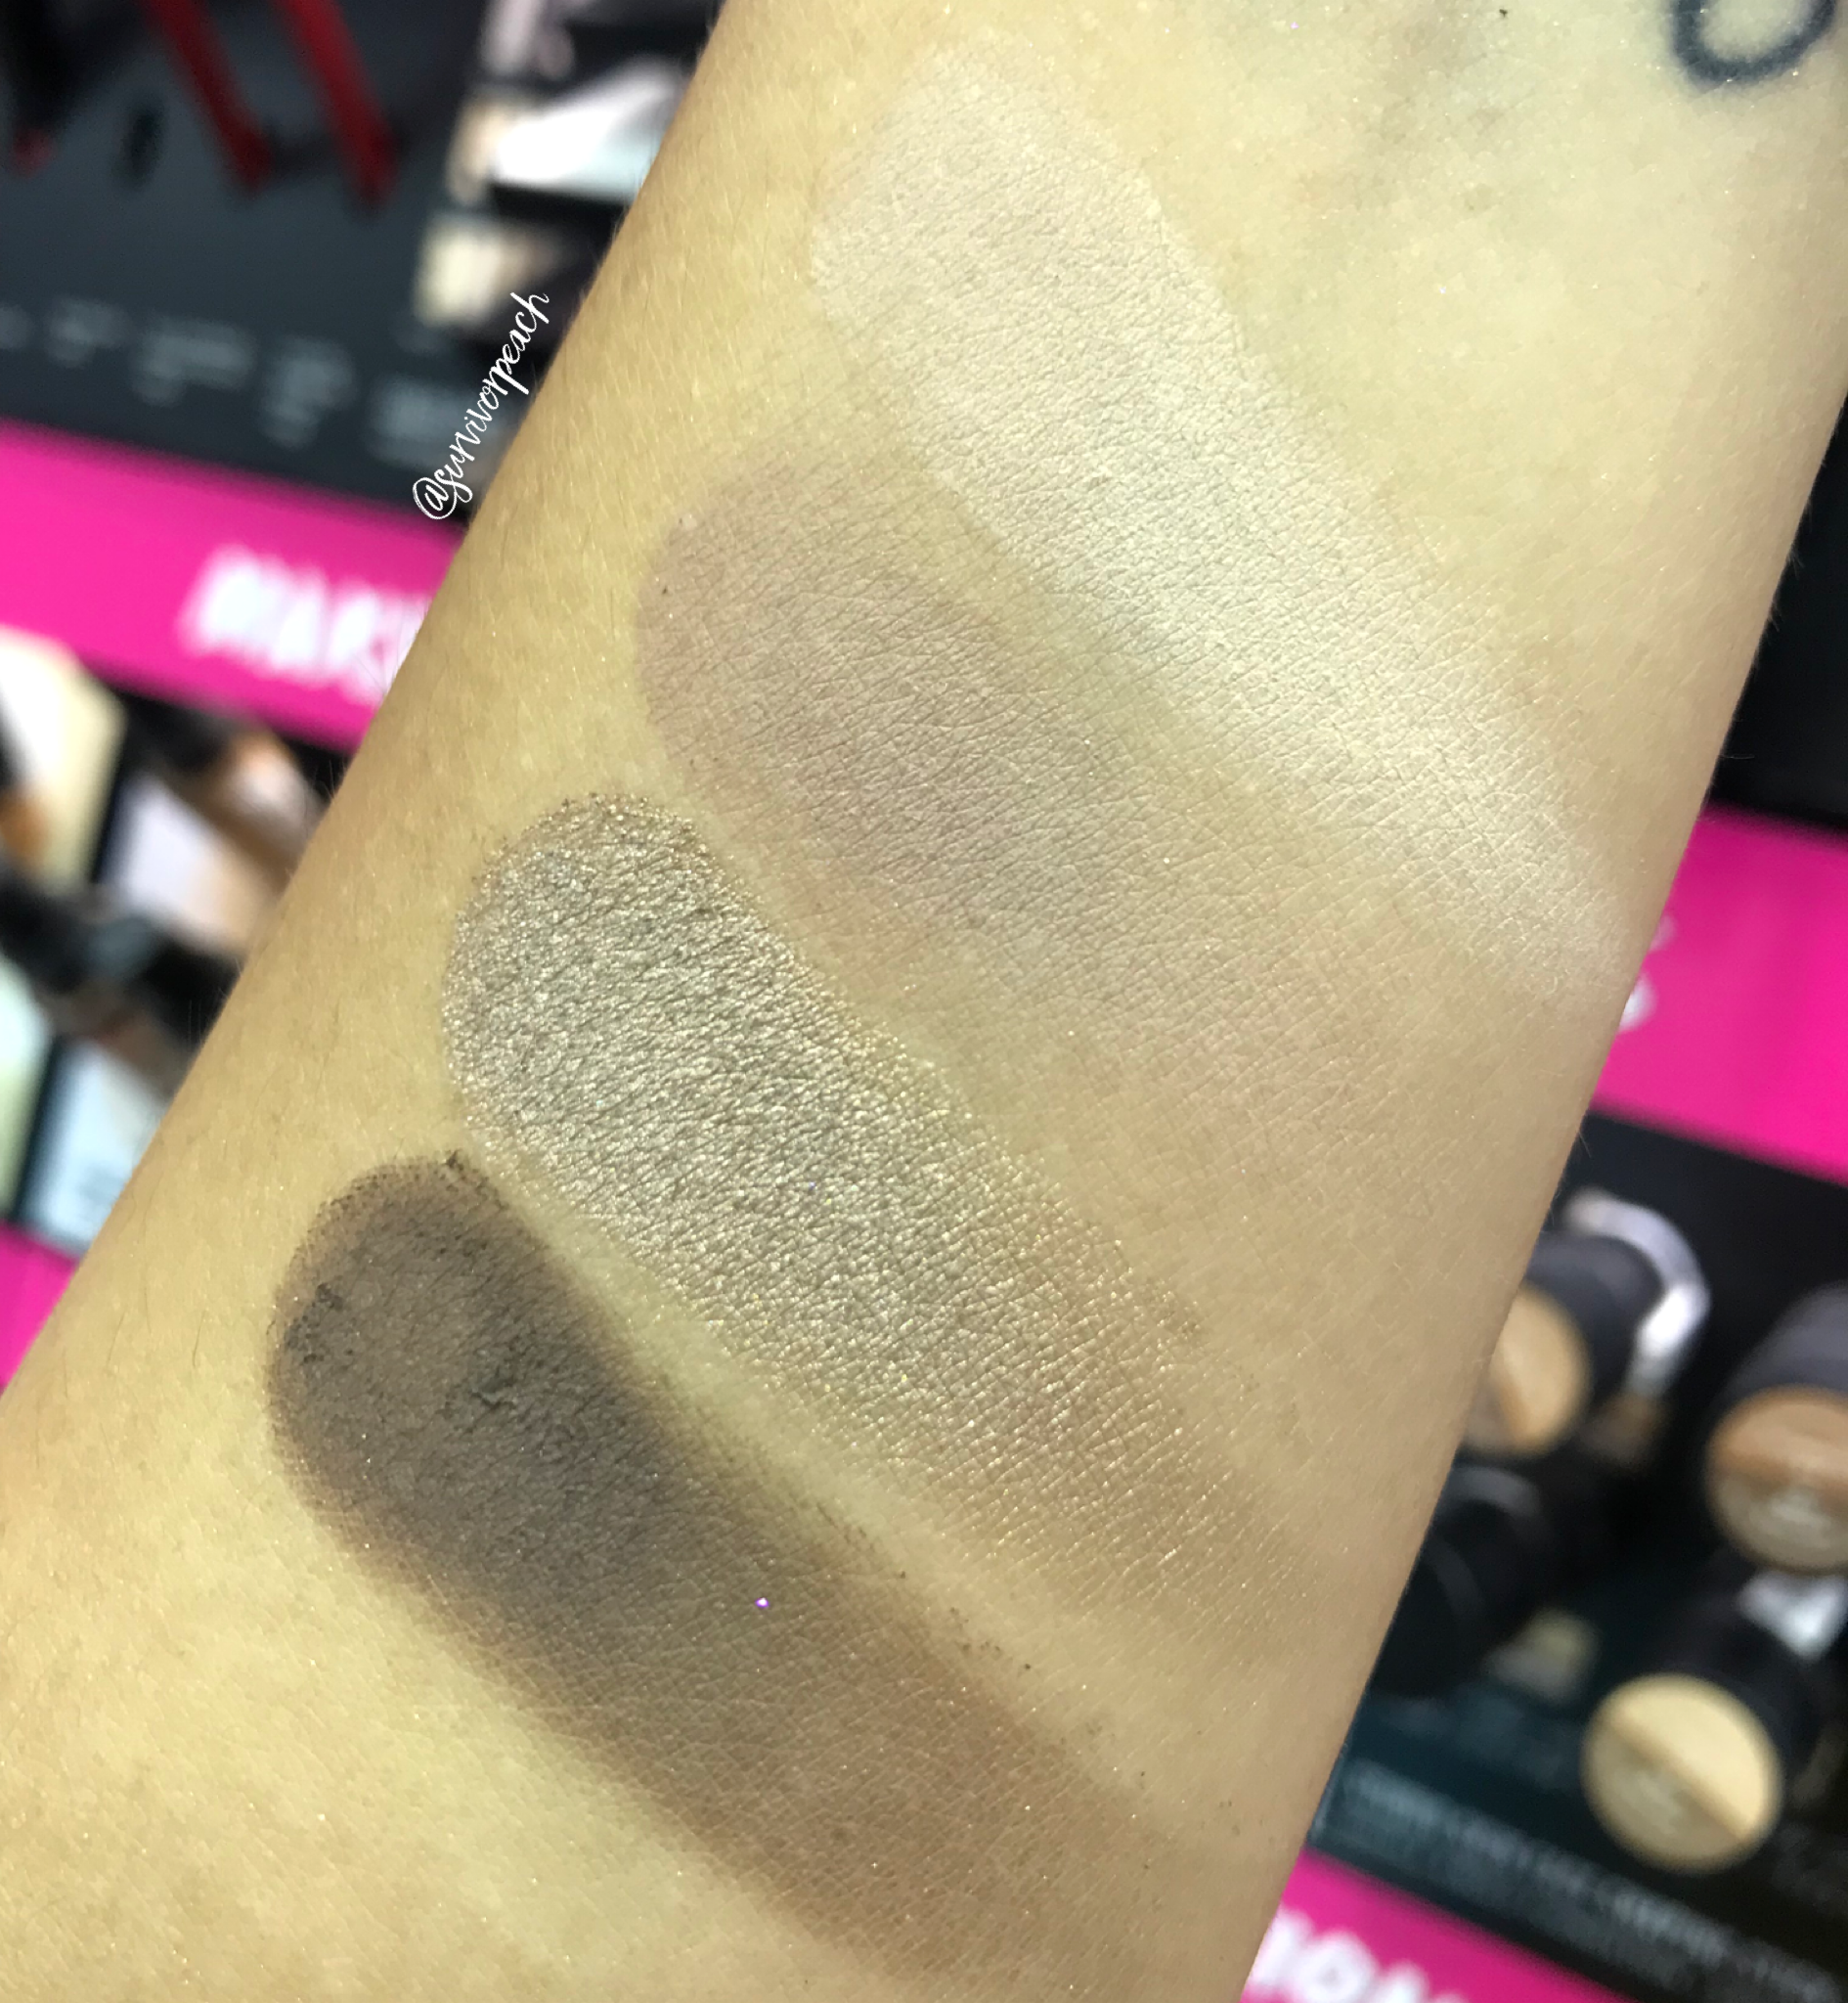 Swatches of the Smashbox Covershot Eyeshadow palette - The Minimalist